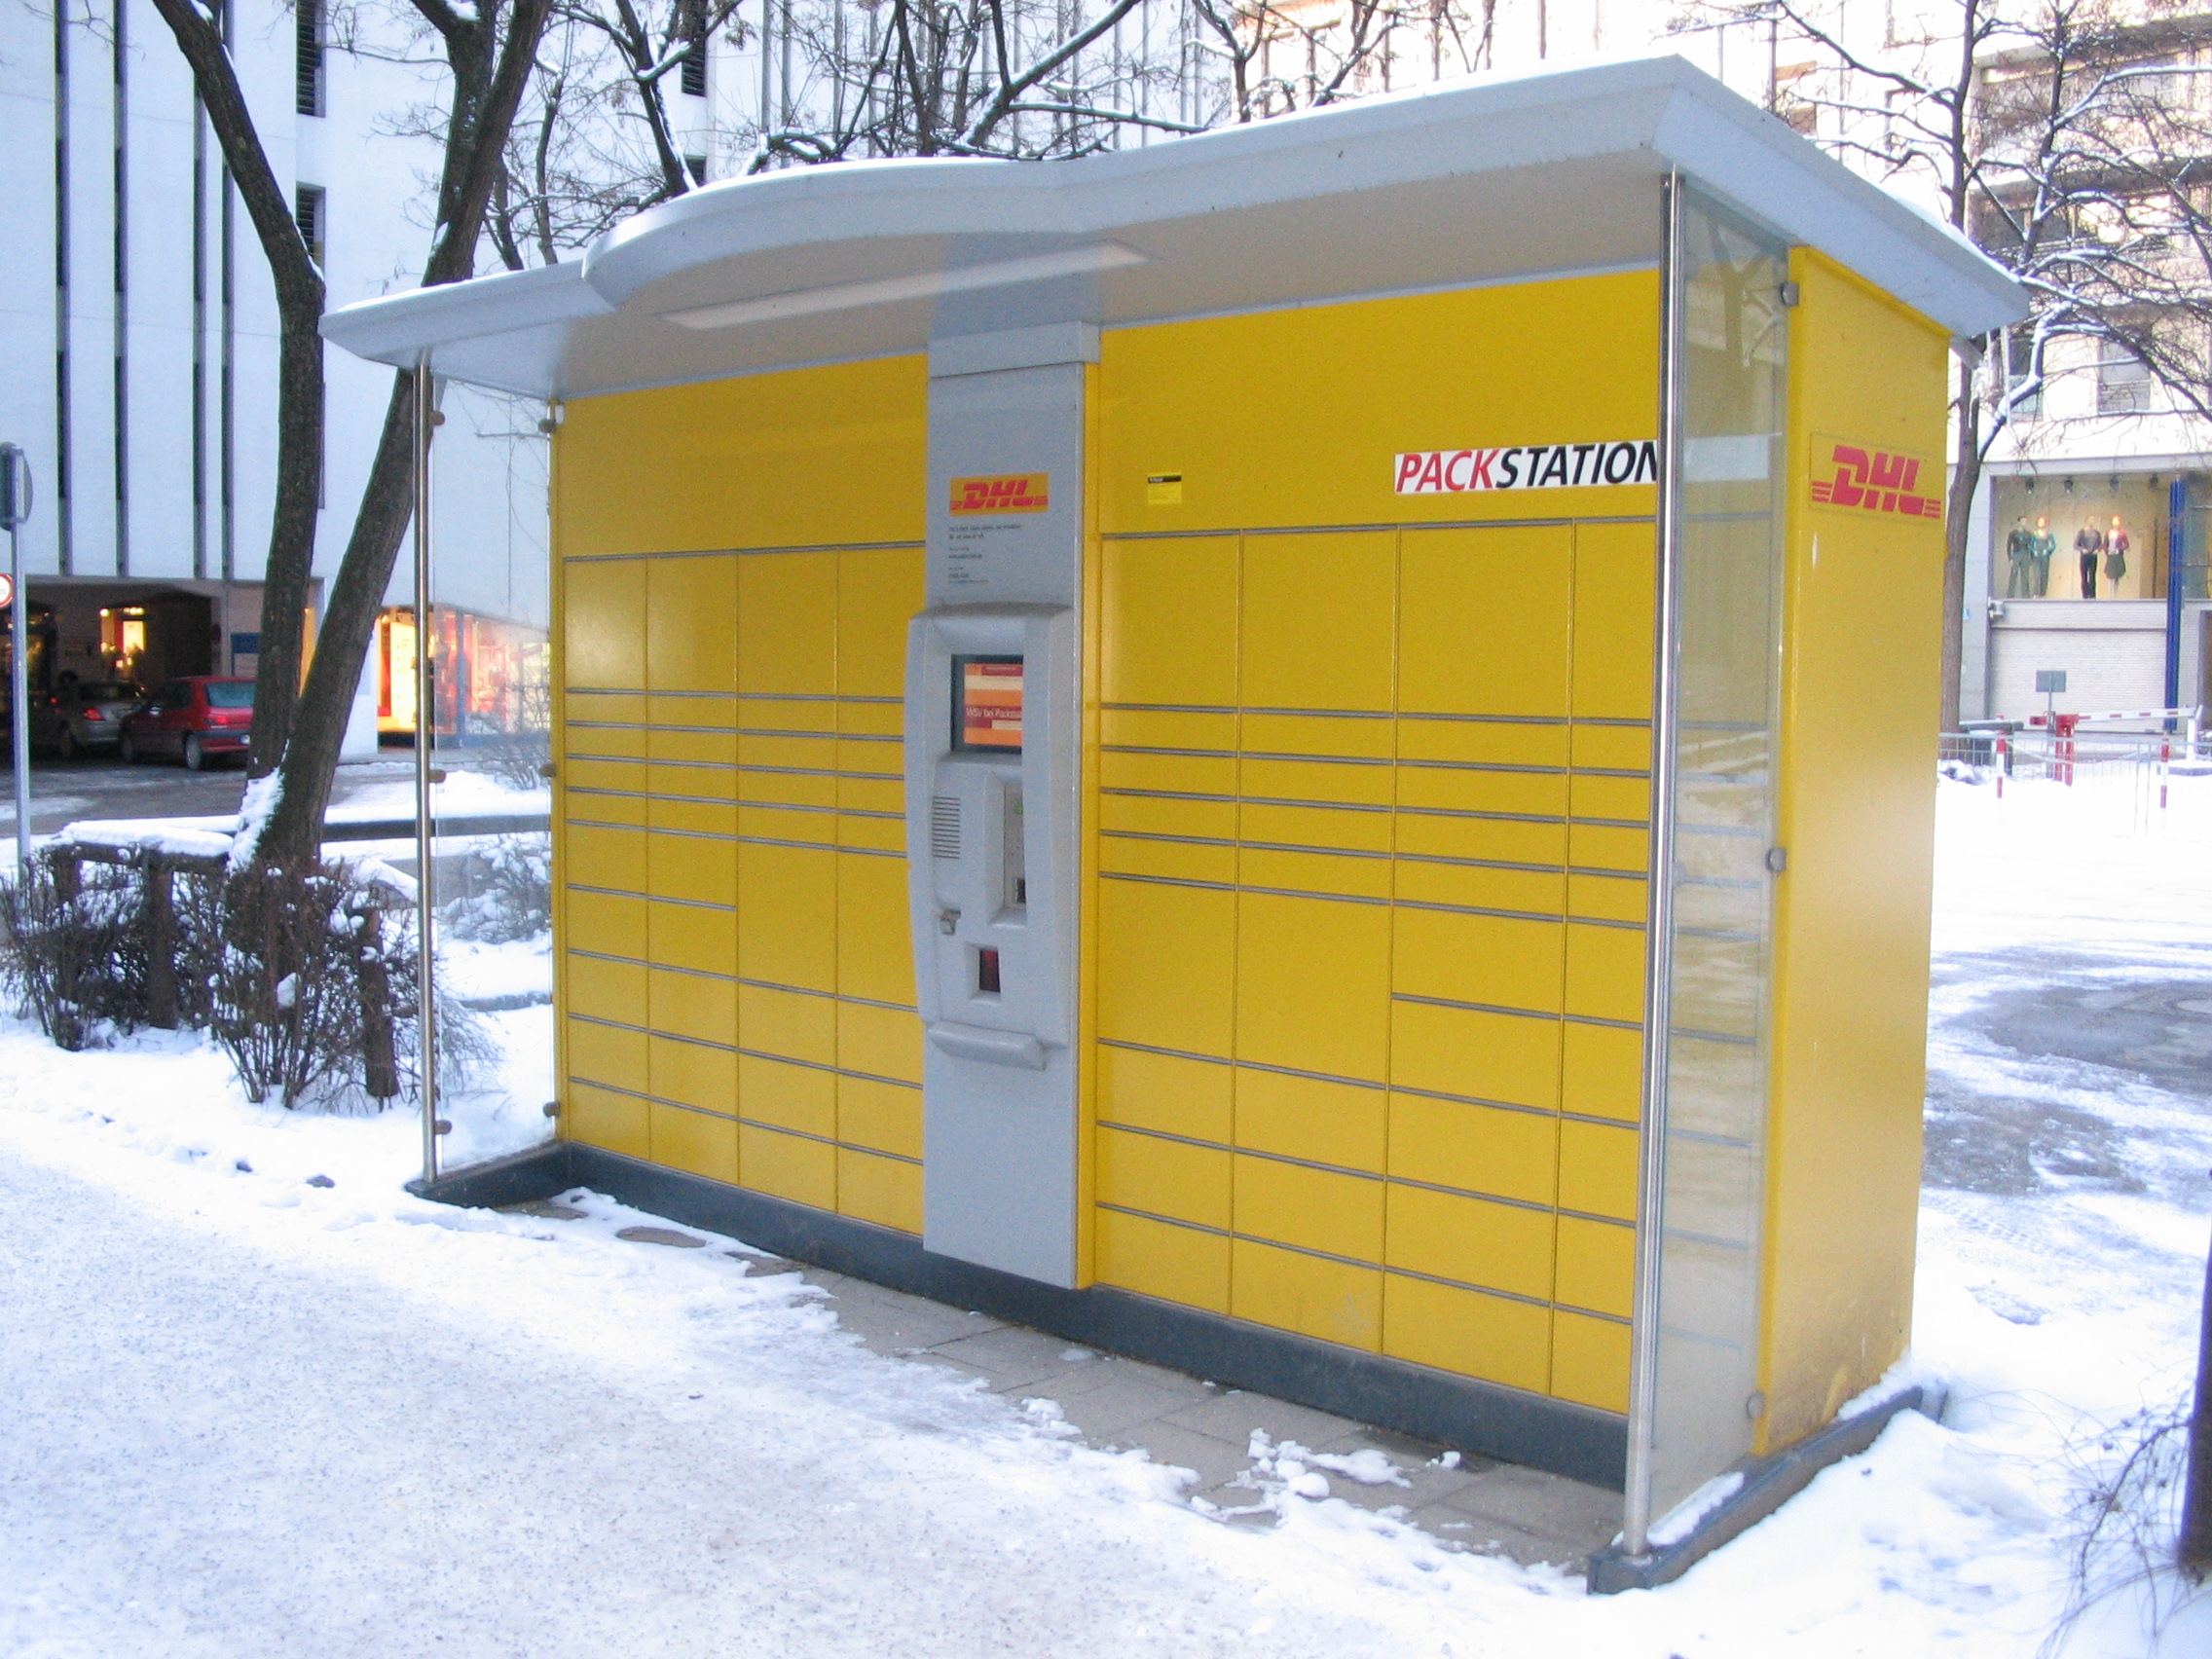 Packstation Karte Beantragen.Packstation Wikipedia